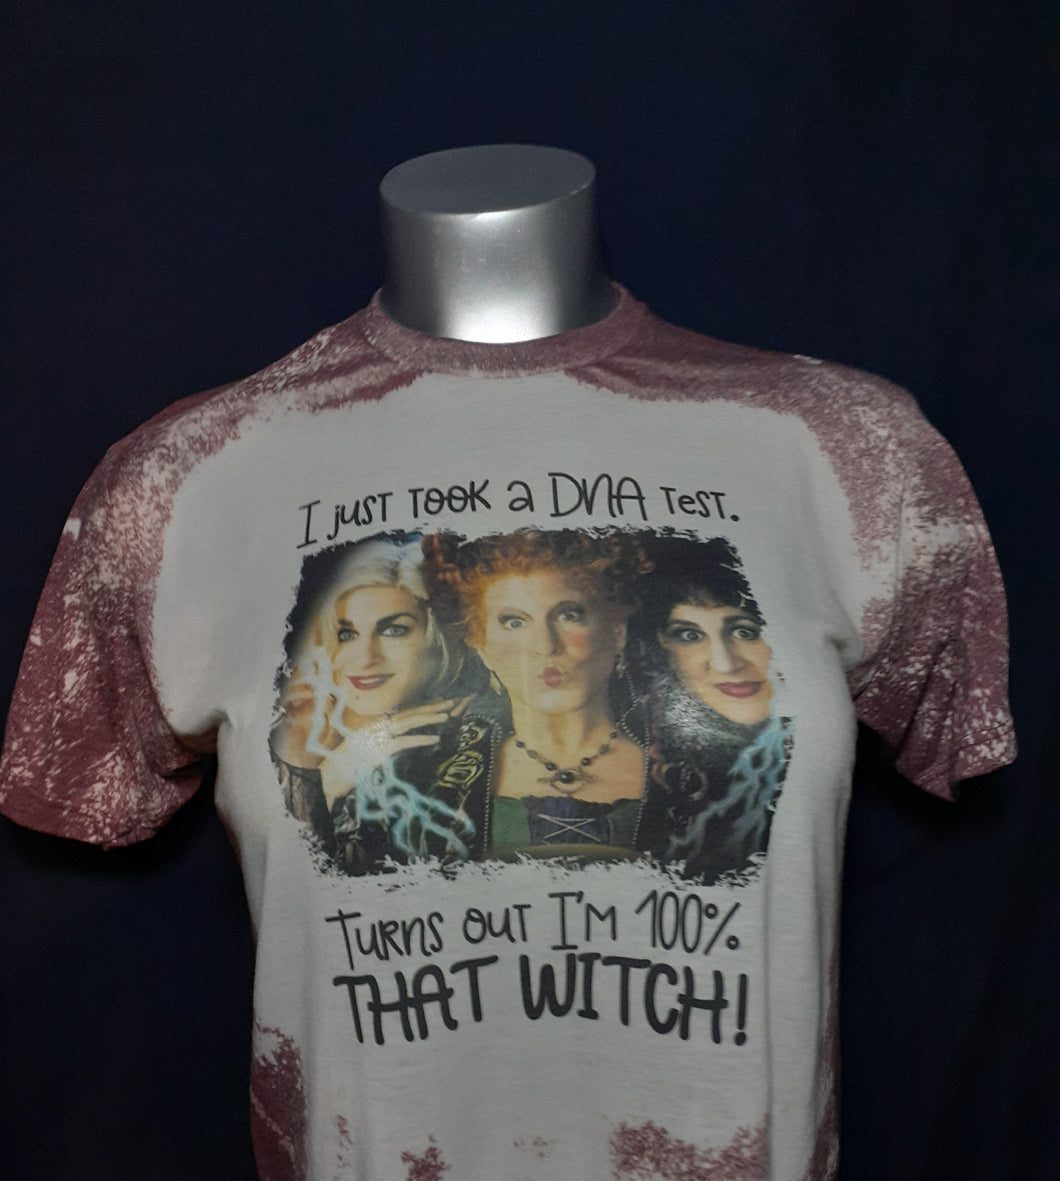 Bleached Sublimation 100% That Witch